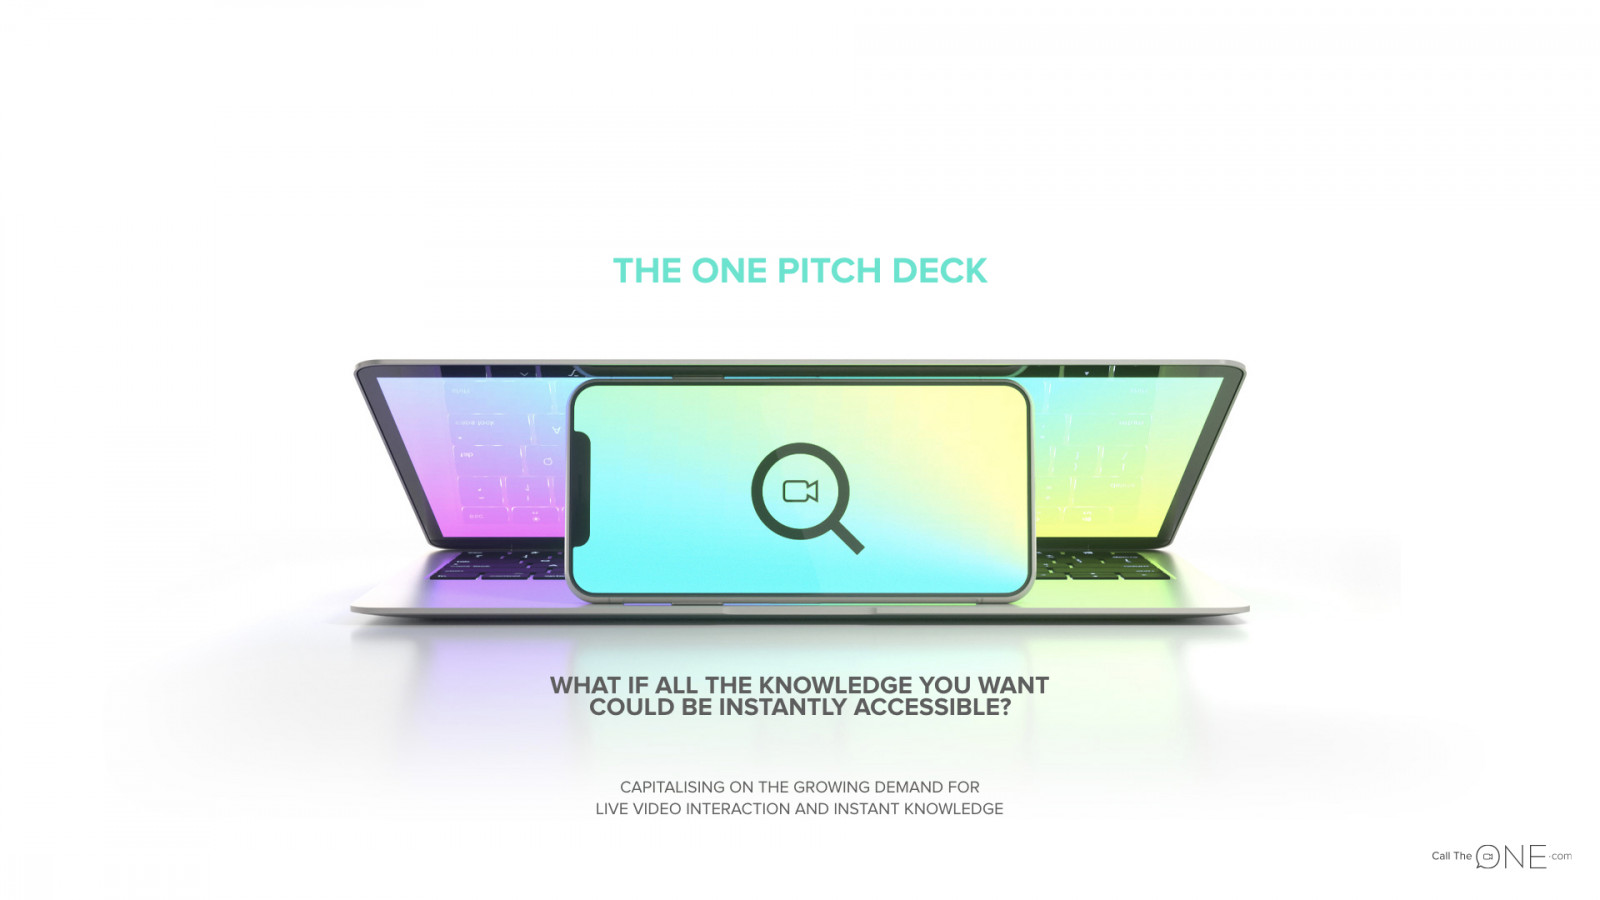 theone-pitch-deck-ejemplo-teaser